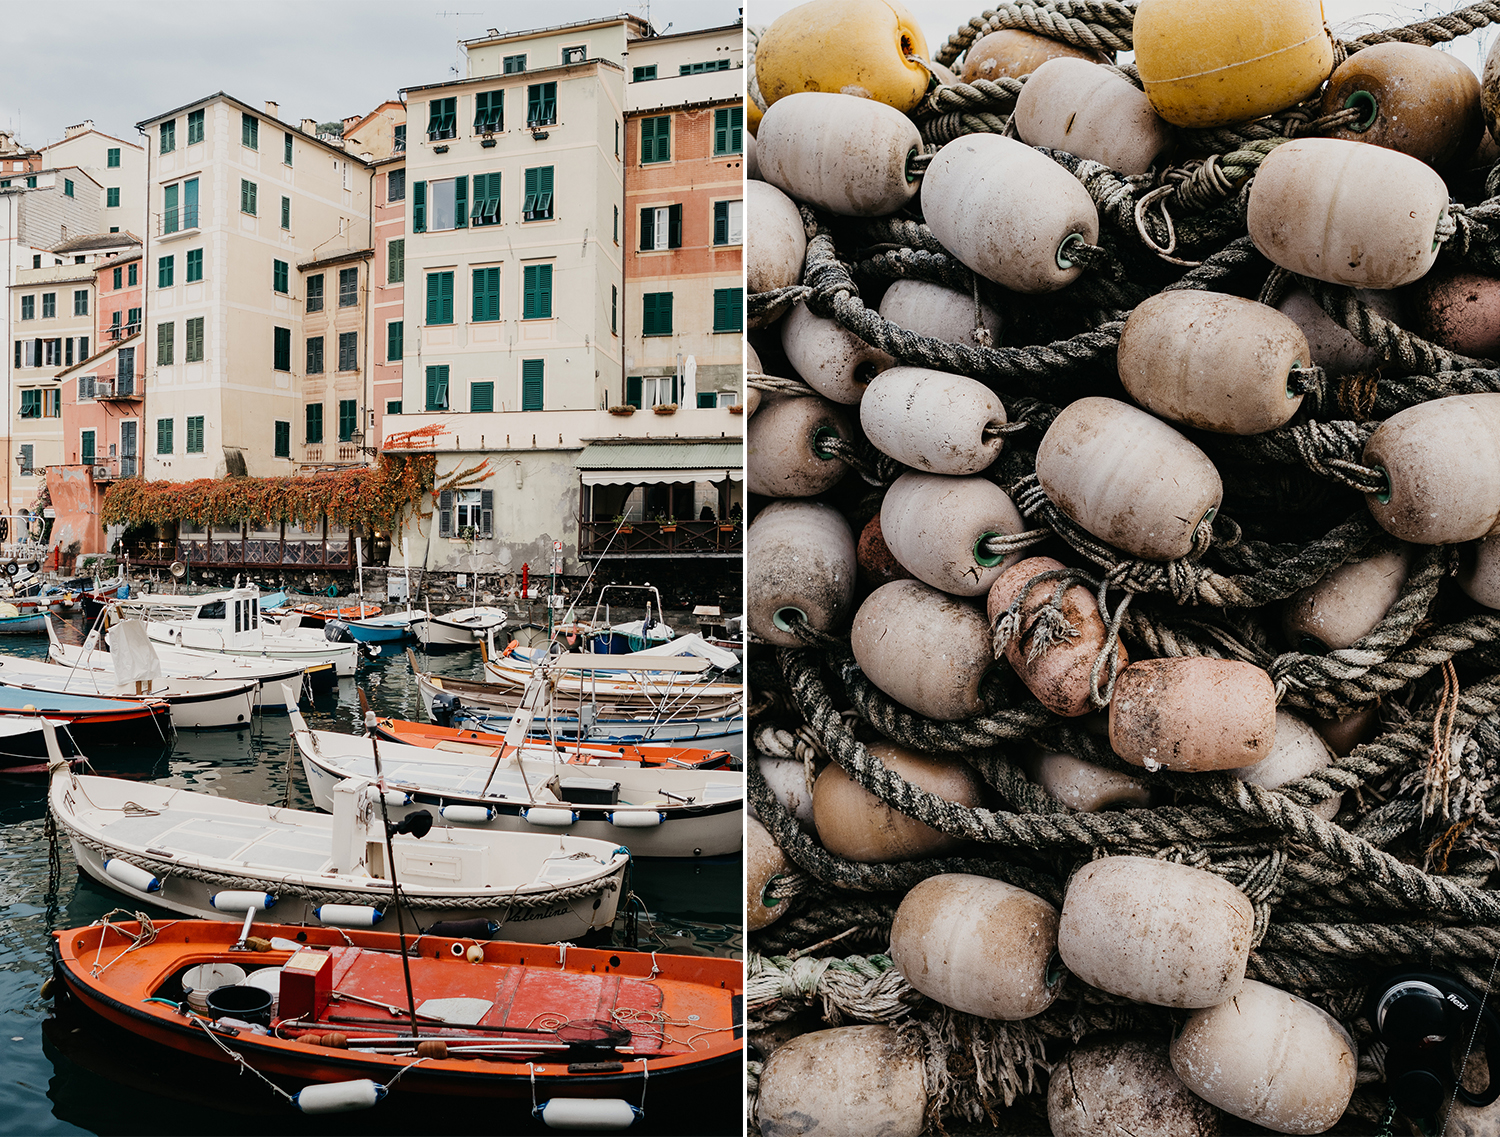 Rebecca Rinaldi maternity photographer in Italy. maternity photo shoot in Camogli, Liguria. detail og sheets hanging from typical ligurian houses and boats.